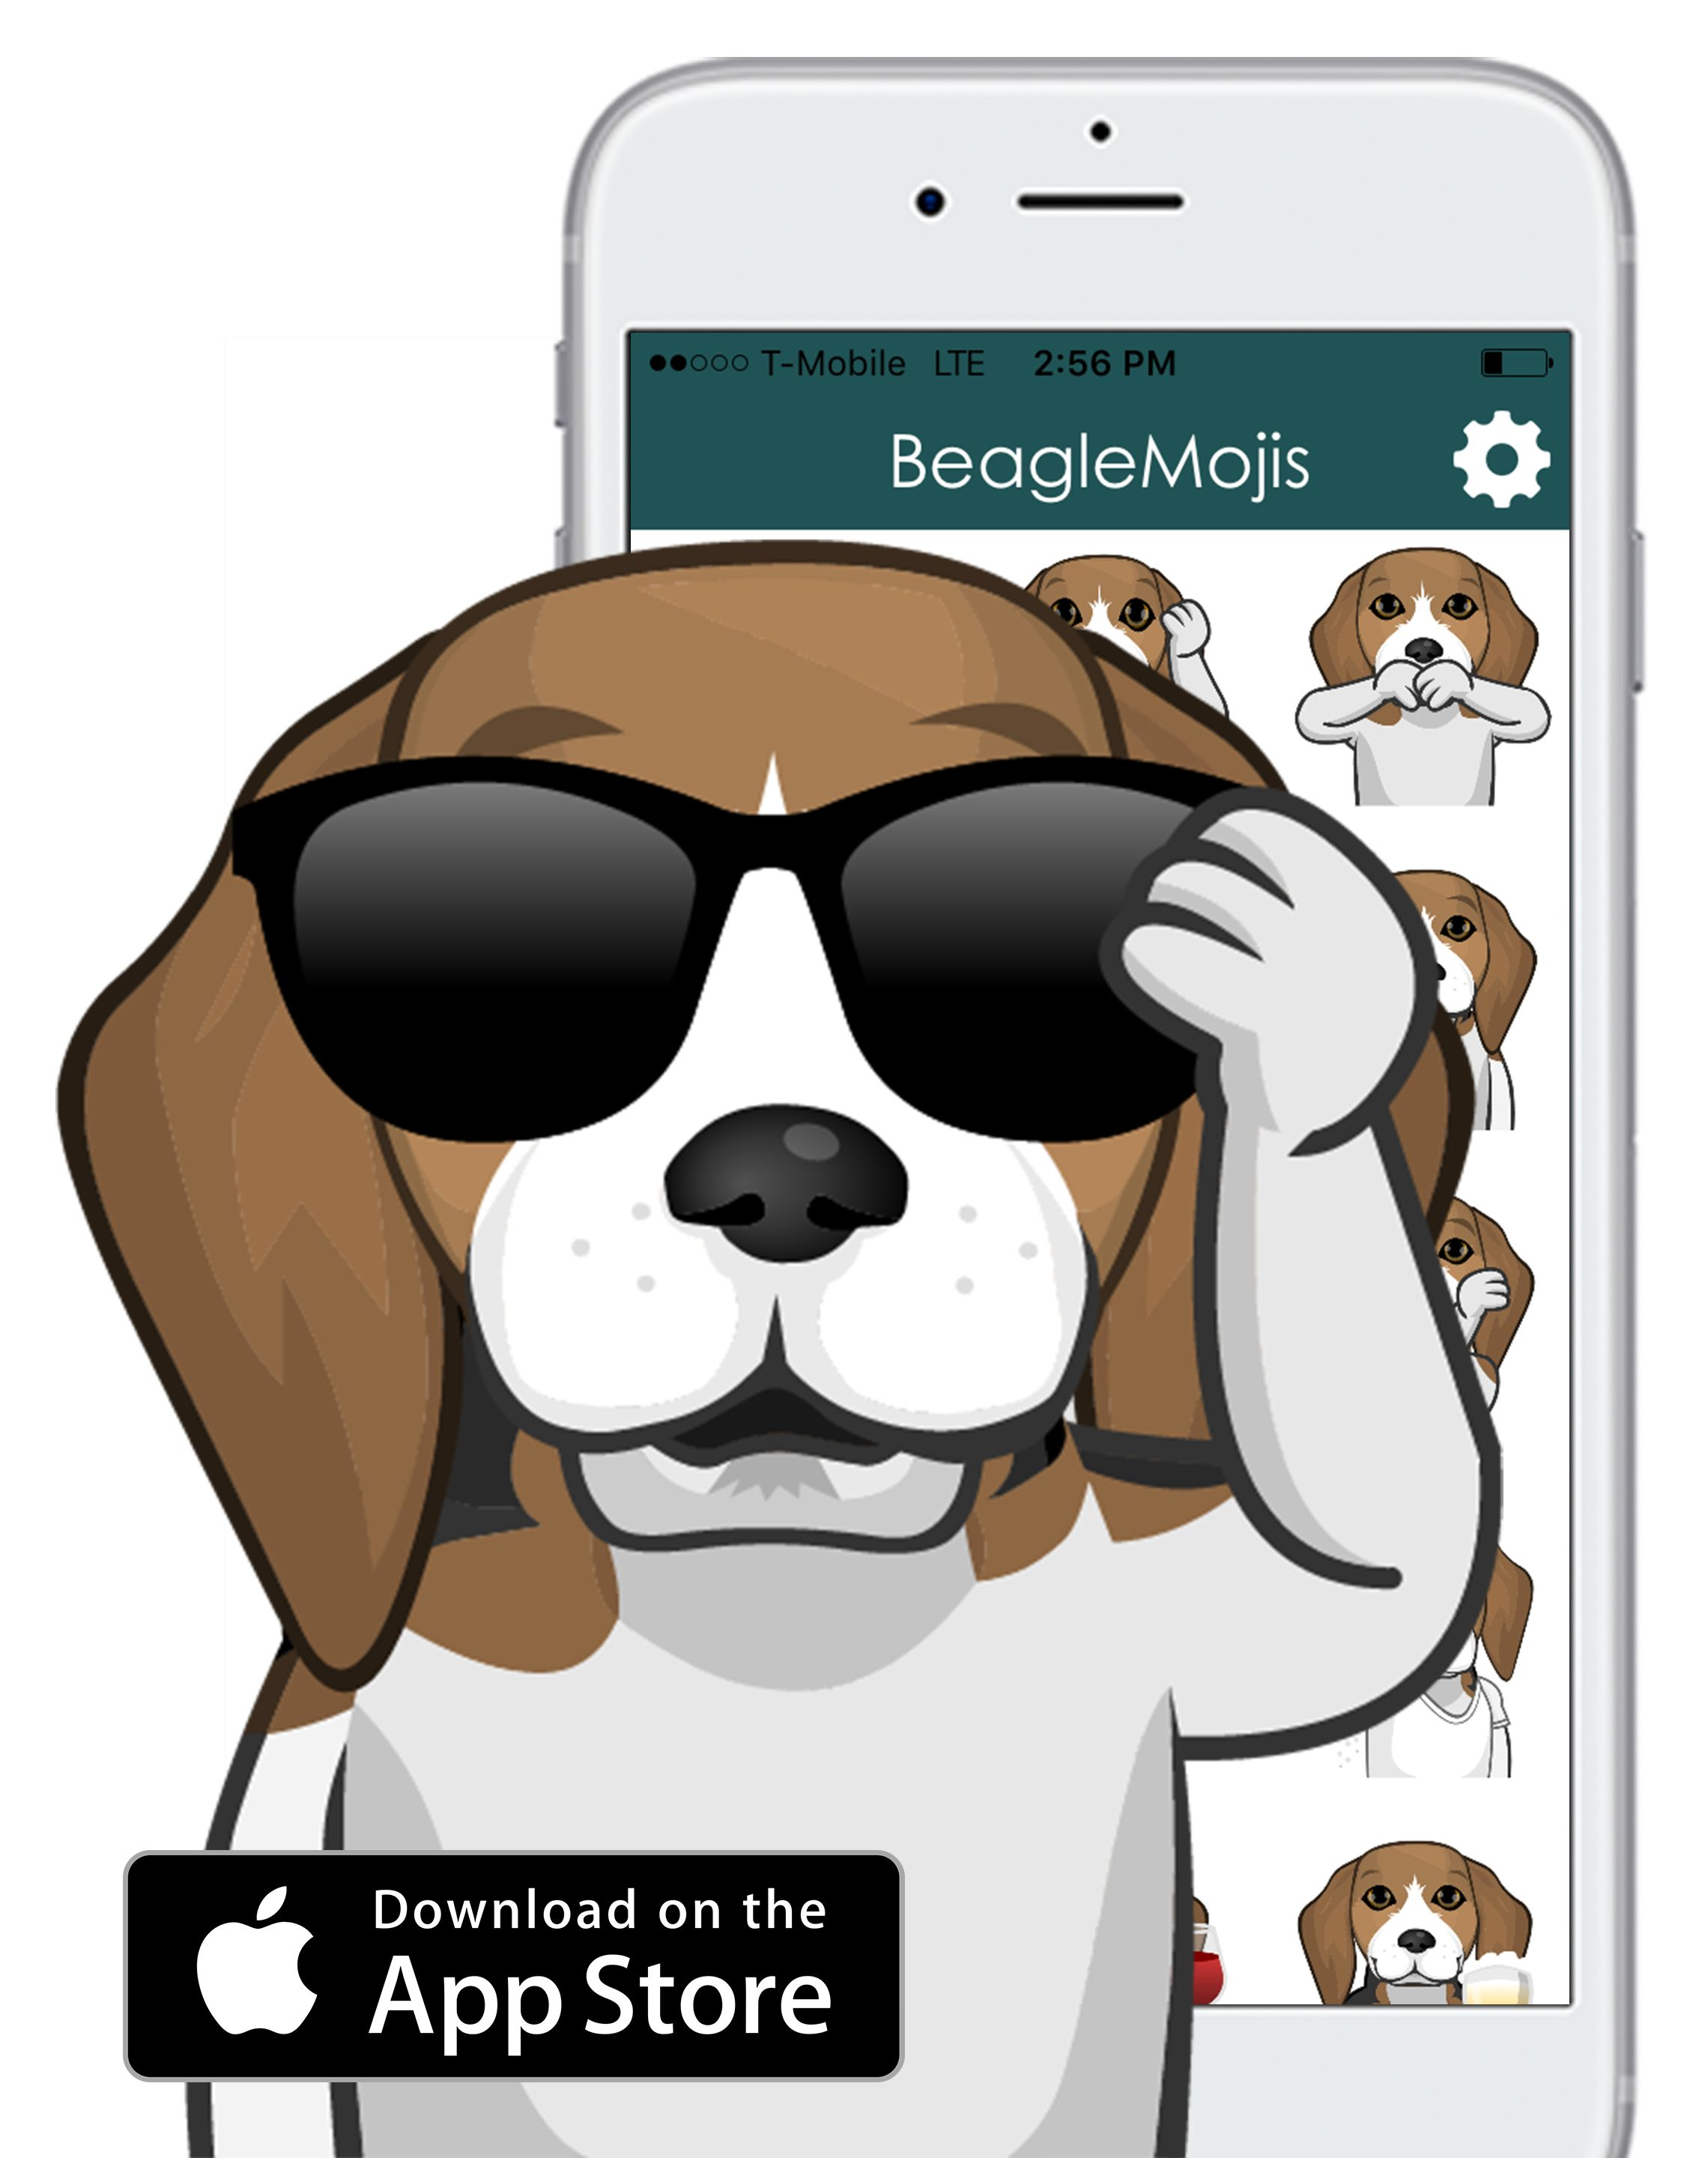 Send Cute Beagle Emojis Wherever You Message Cuteness Overload